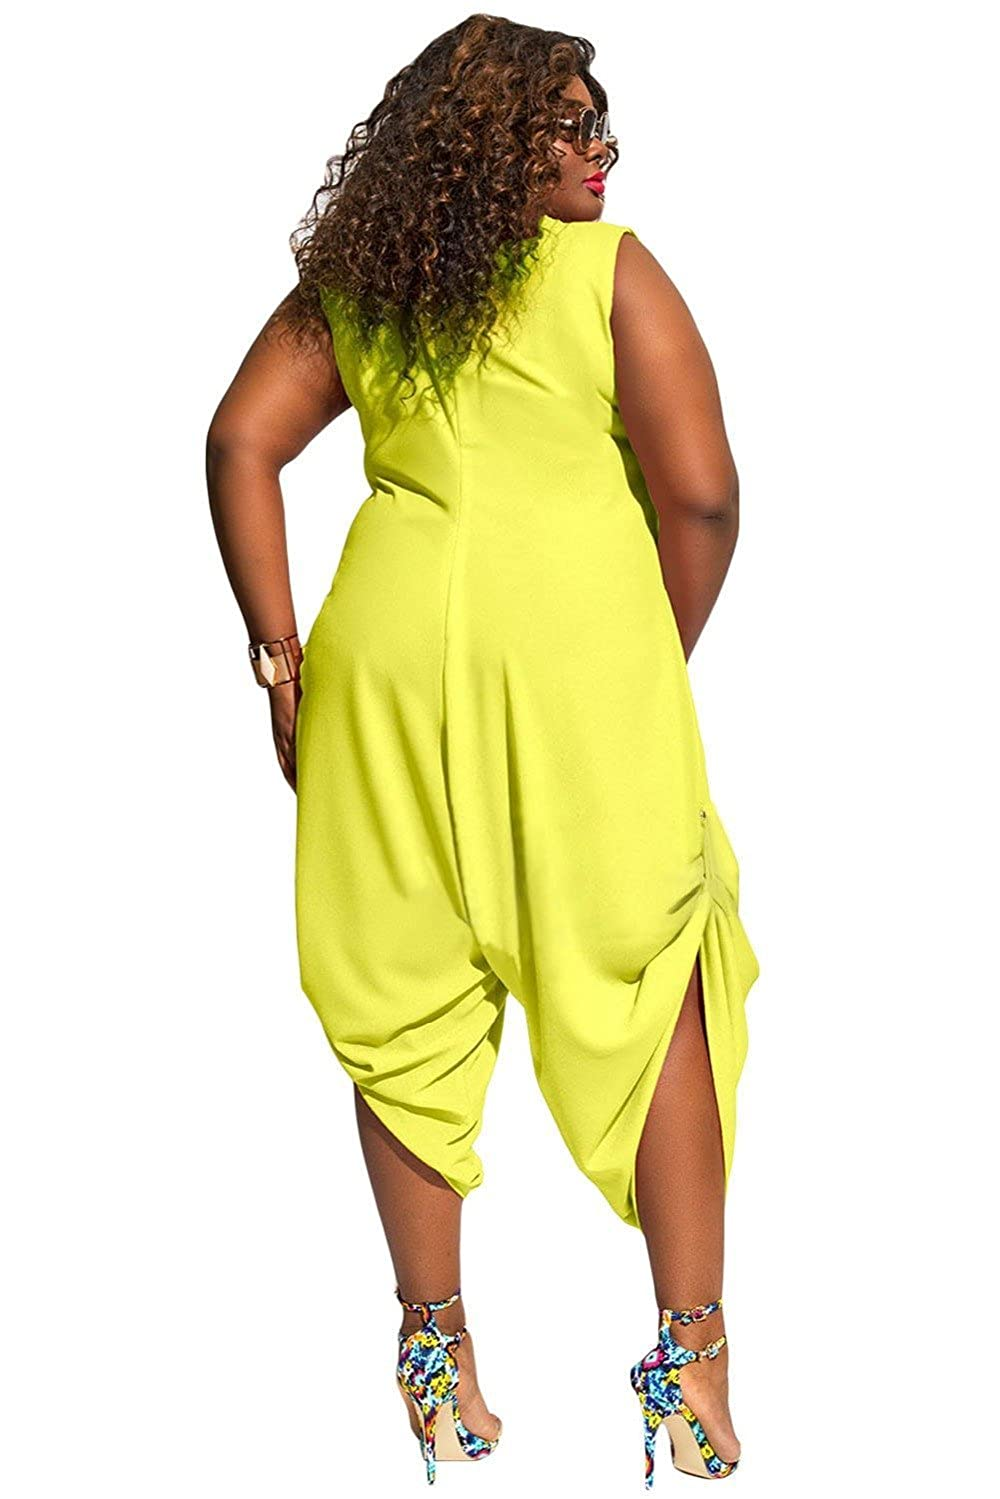 9695ee56a7a3 Amazon.com  Inorin Womens Plus Size Summer Wide Leg Harem Jumpsuits Casual  One Piece Romper Outfits  Clothing